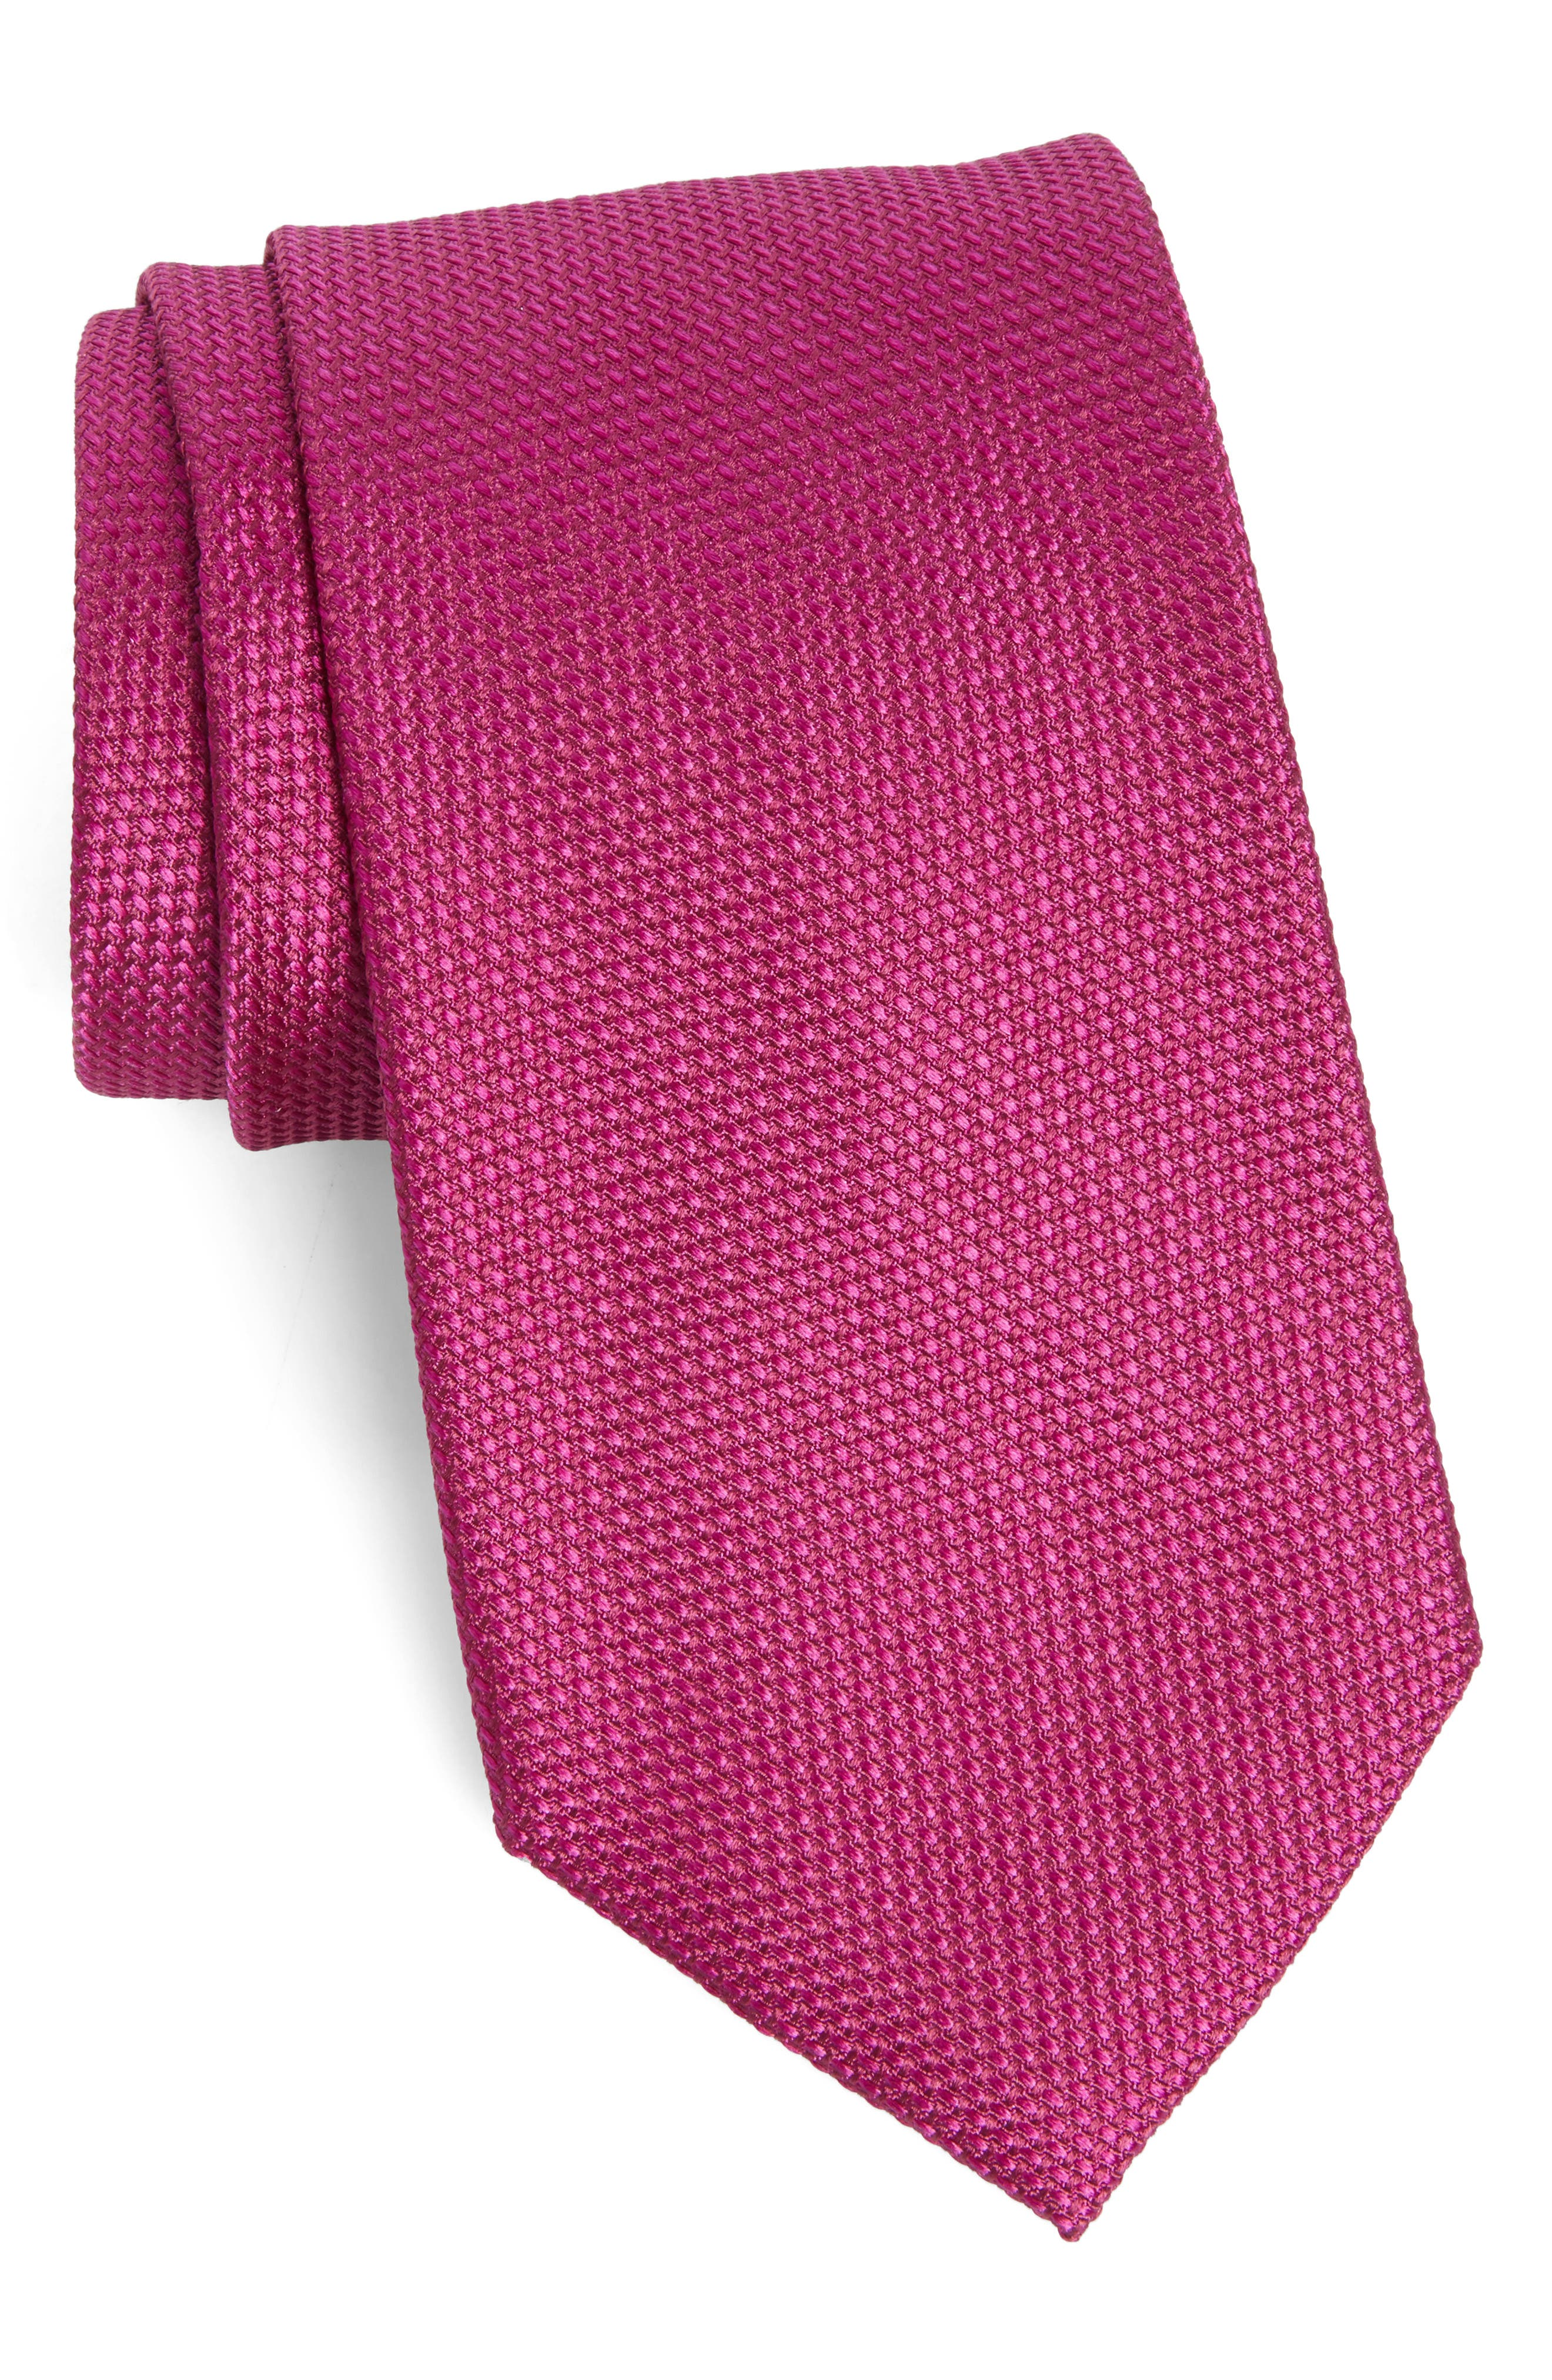 Solid Silk Tie,                             Main thumbnail 1, color,                             654